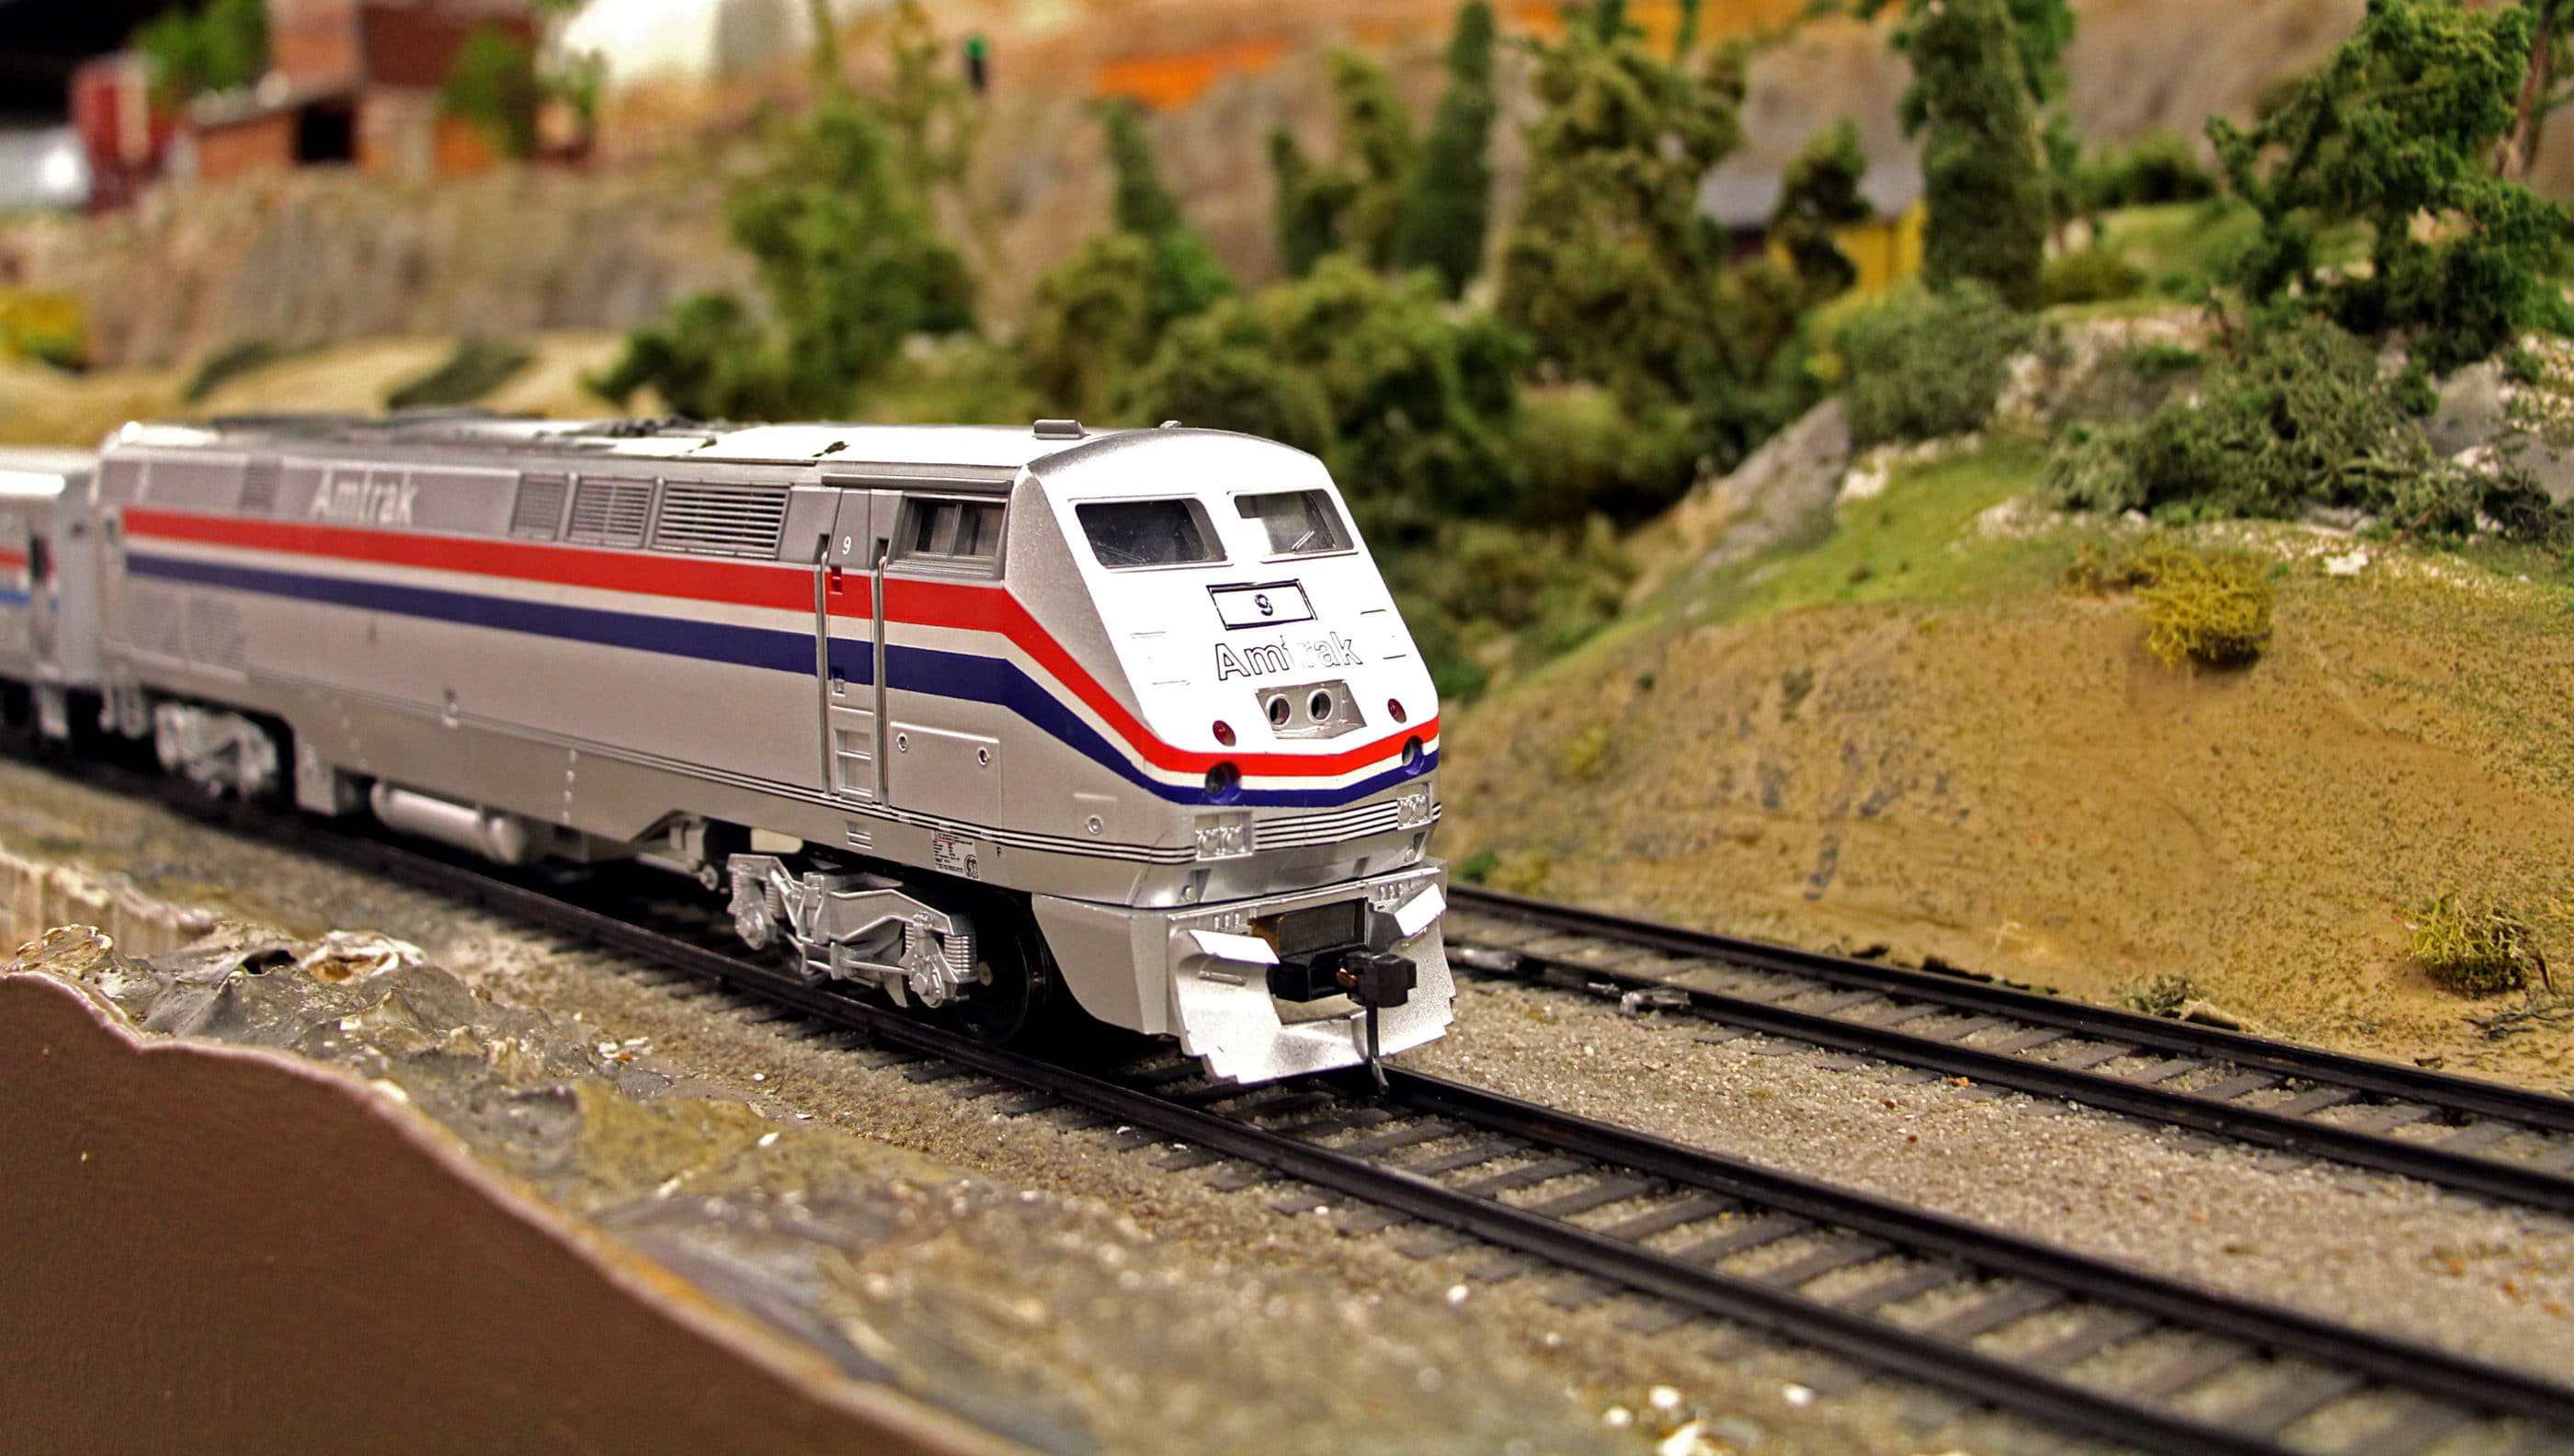 Things to Do in Balboa Park: San Diego Model Railroad Museum